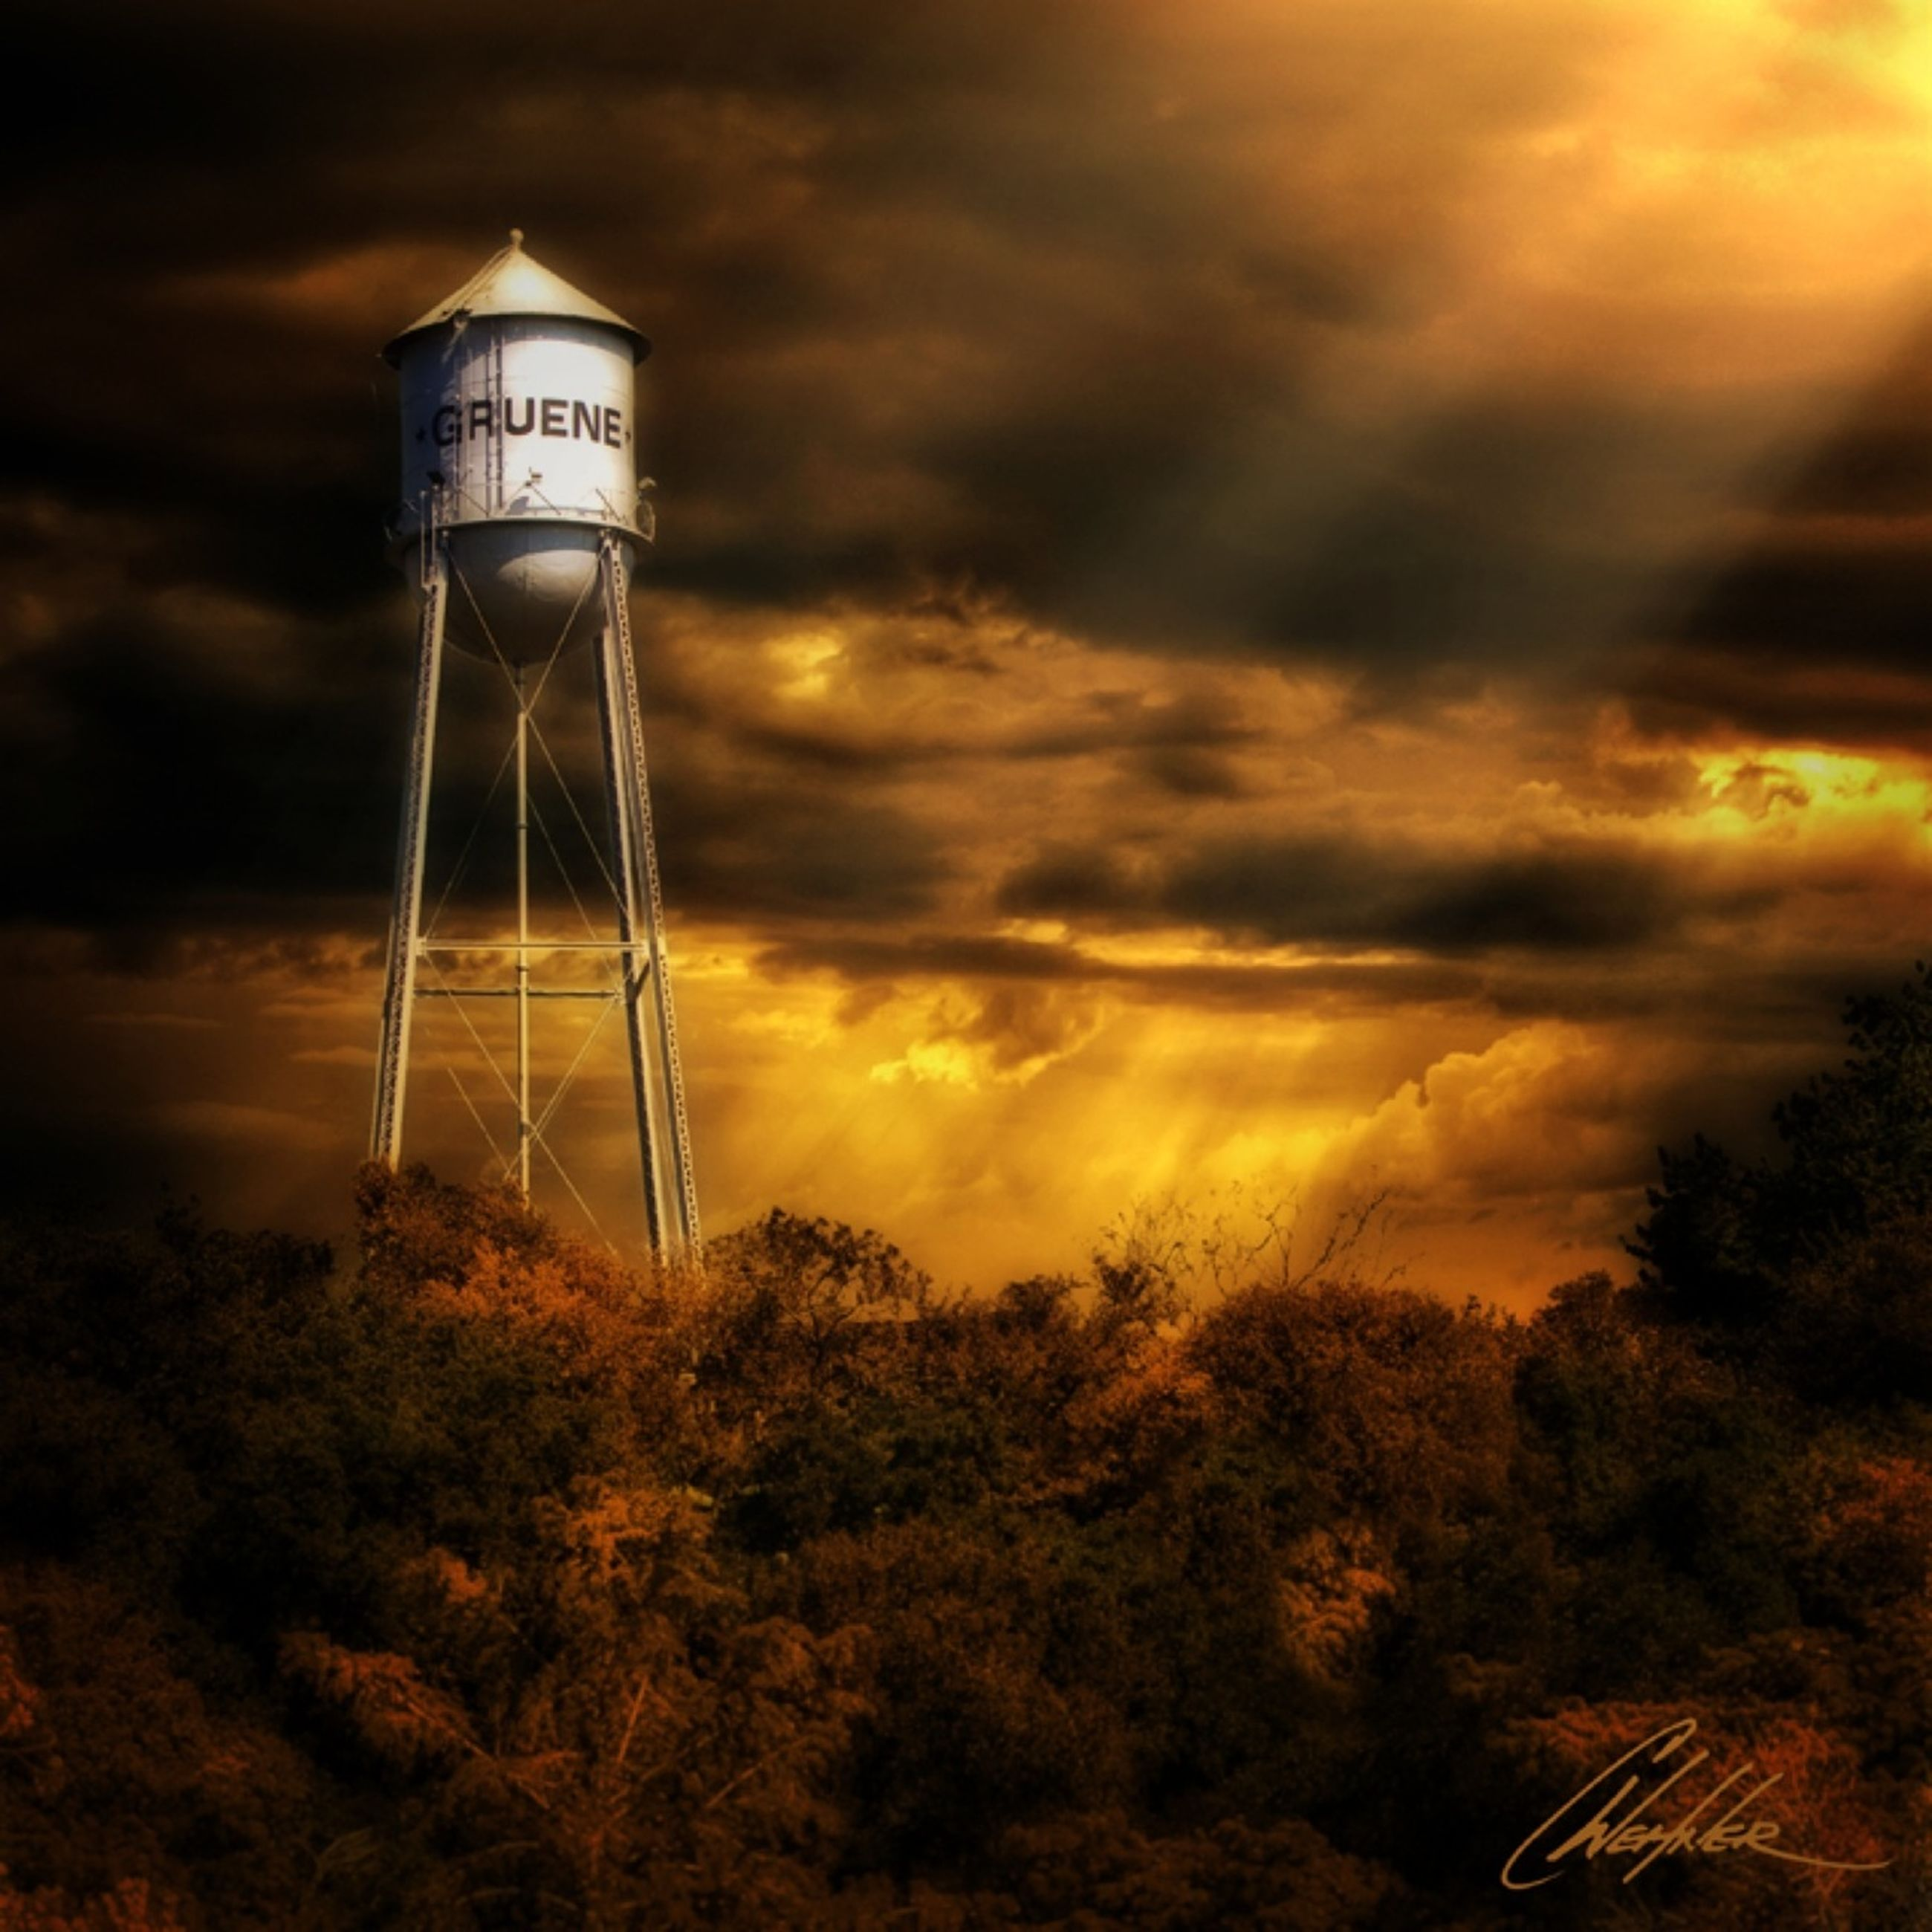 sky, sunset, cloud - sky, street light, low angle view, lighting equipment, cloudy, silhouette, scenics, nature, orange color, tranquility, beauty in nature, dusk, built structure, cloud, building exterior, tree, tranquil scene, architecture